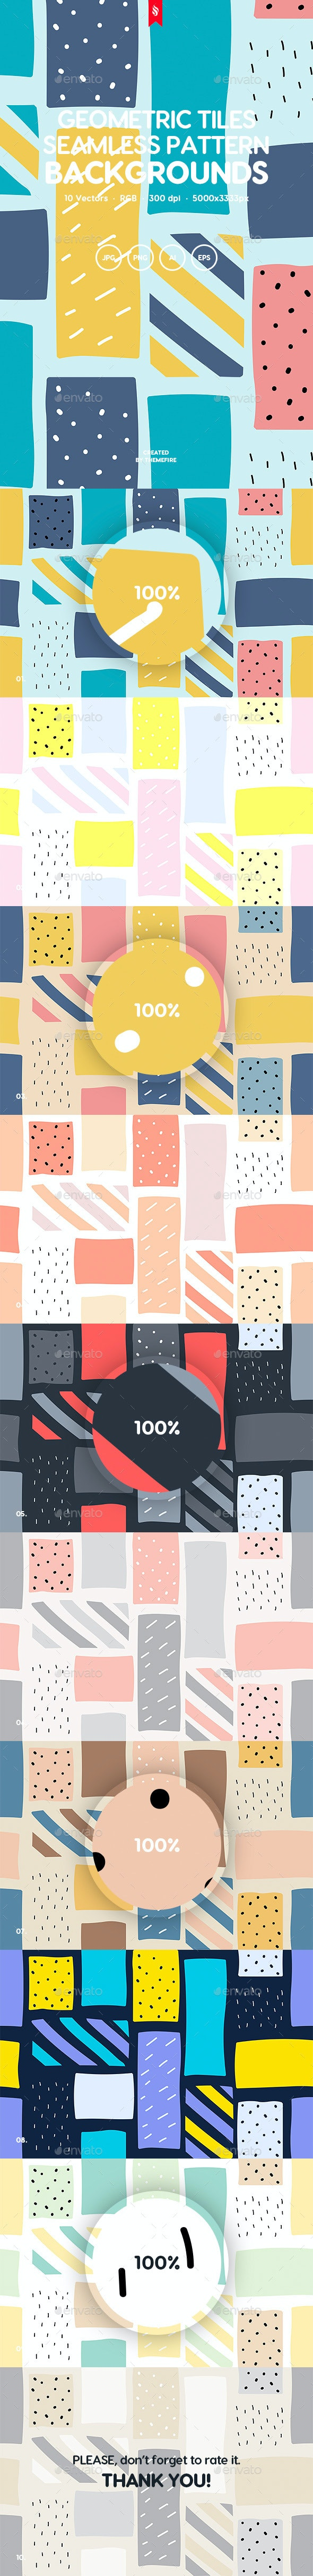 Abstract Doodle Geometric Tiles Seamless Patterns - Patterns Backgrounds